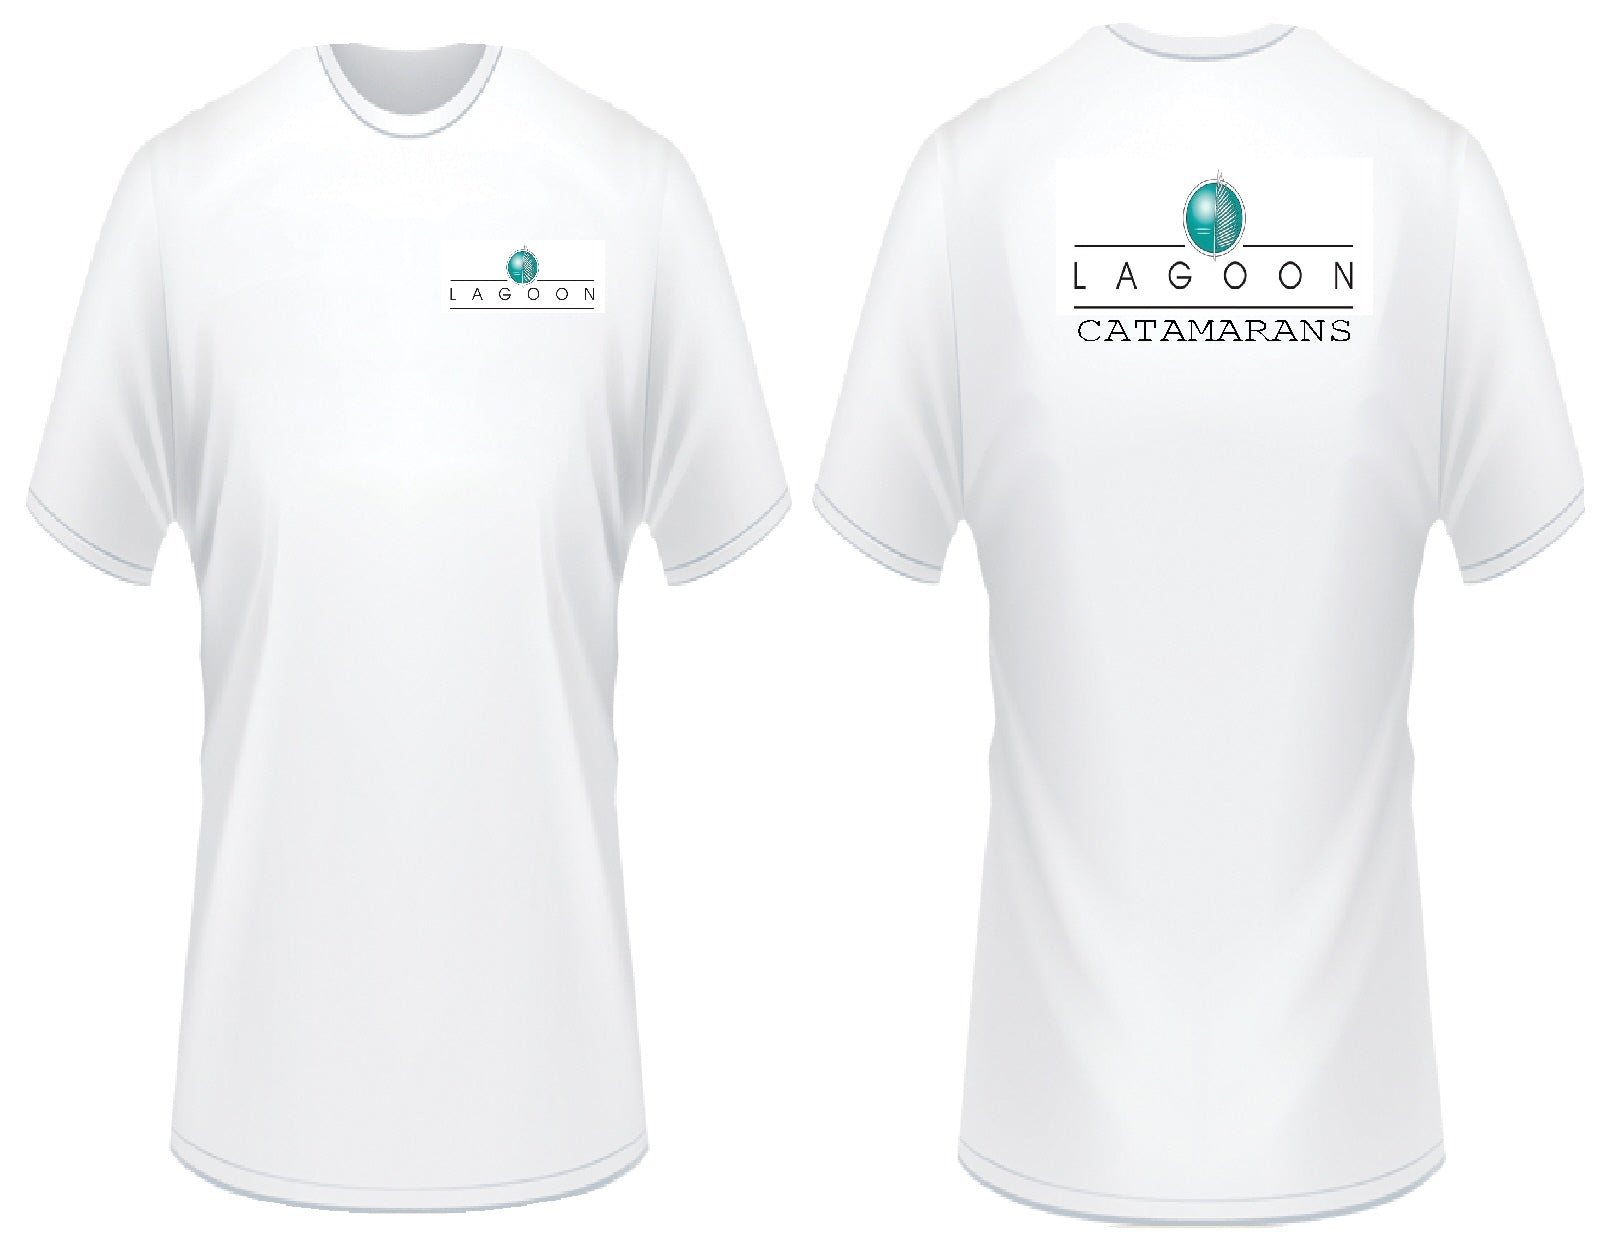 Lagoon Catamarans T-Shirt